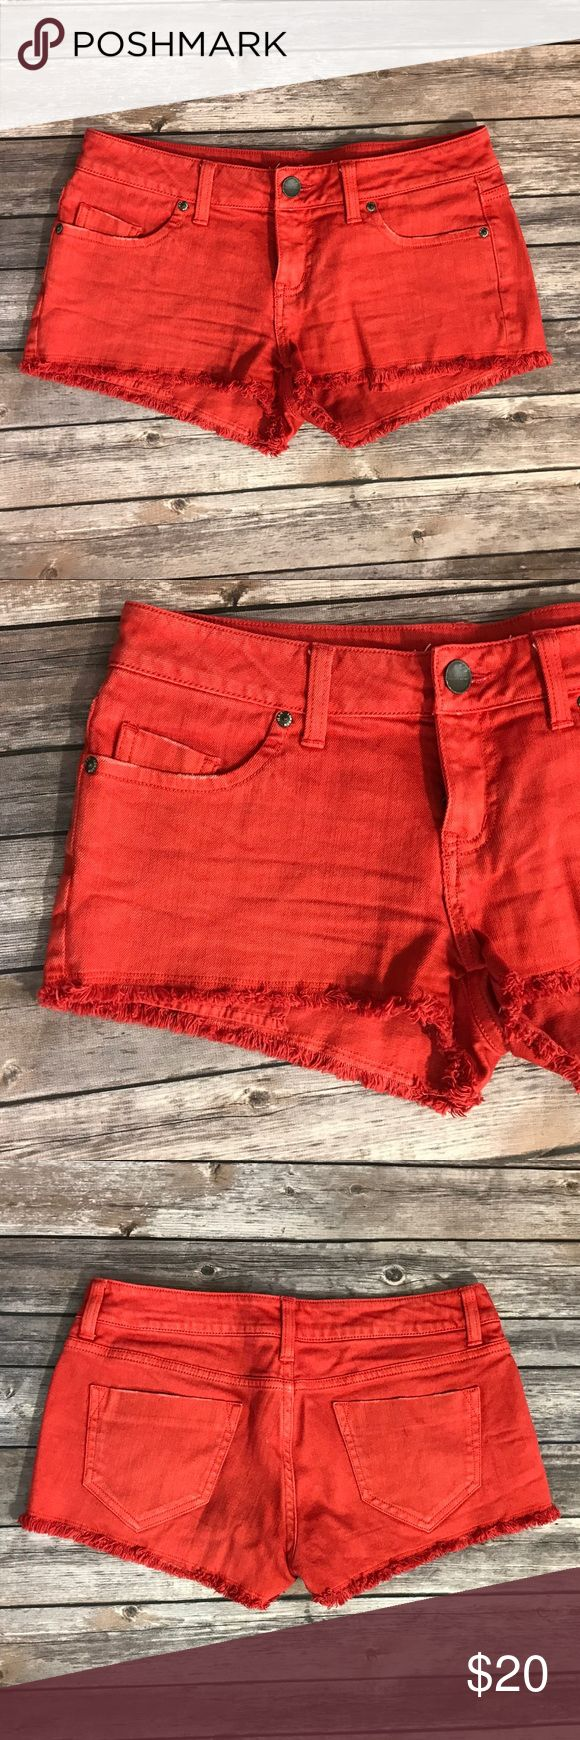 Victorias Secret Cheeky Womens Jean Shorts Red 6 Victorias Secret Cheeky Womens Jean Shorts Red Size 6 Denim Frayed. Measurements: (in inches) Waist:30 Length: 12 Inseam:2 Victoria's Secret Shorts Jean Shorts